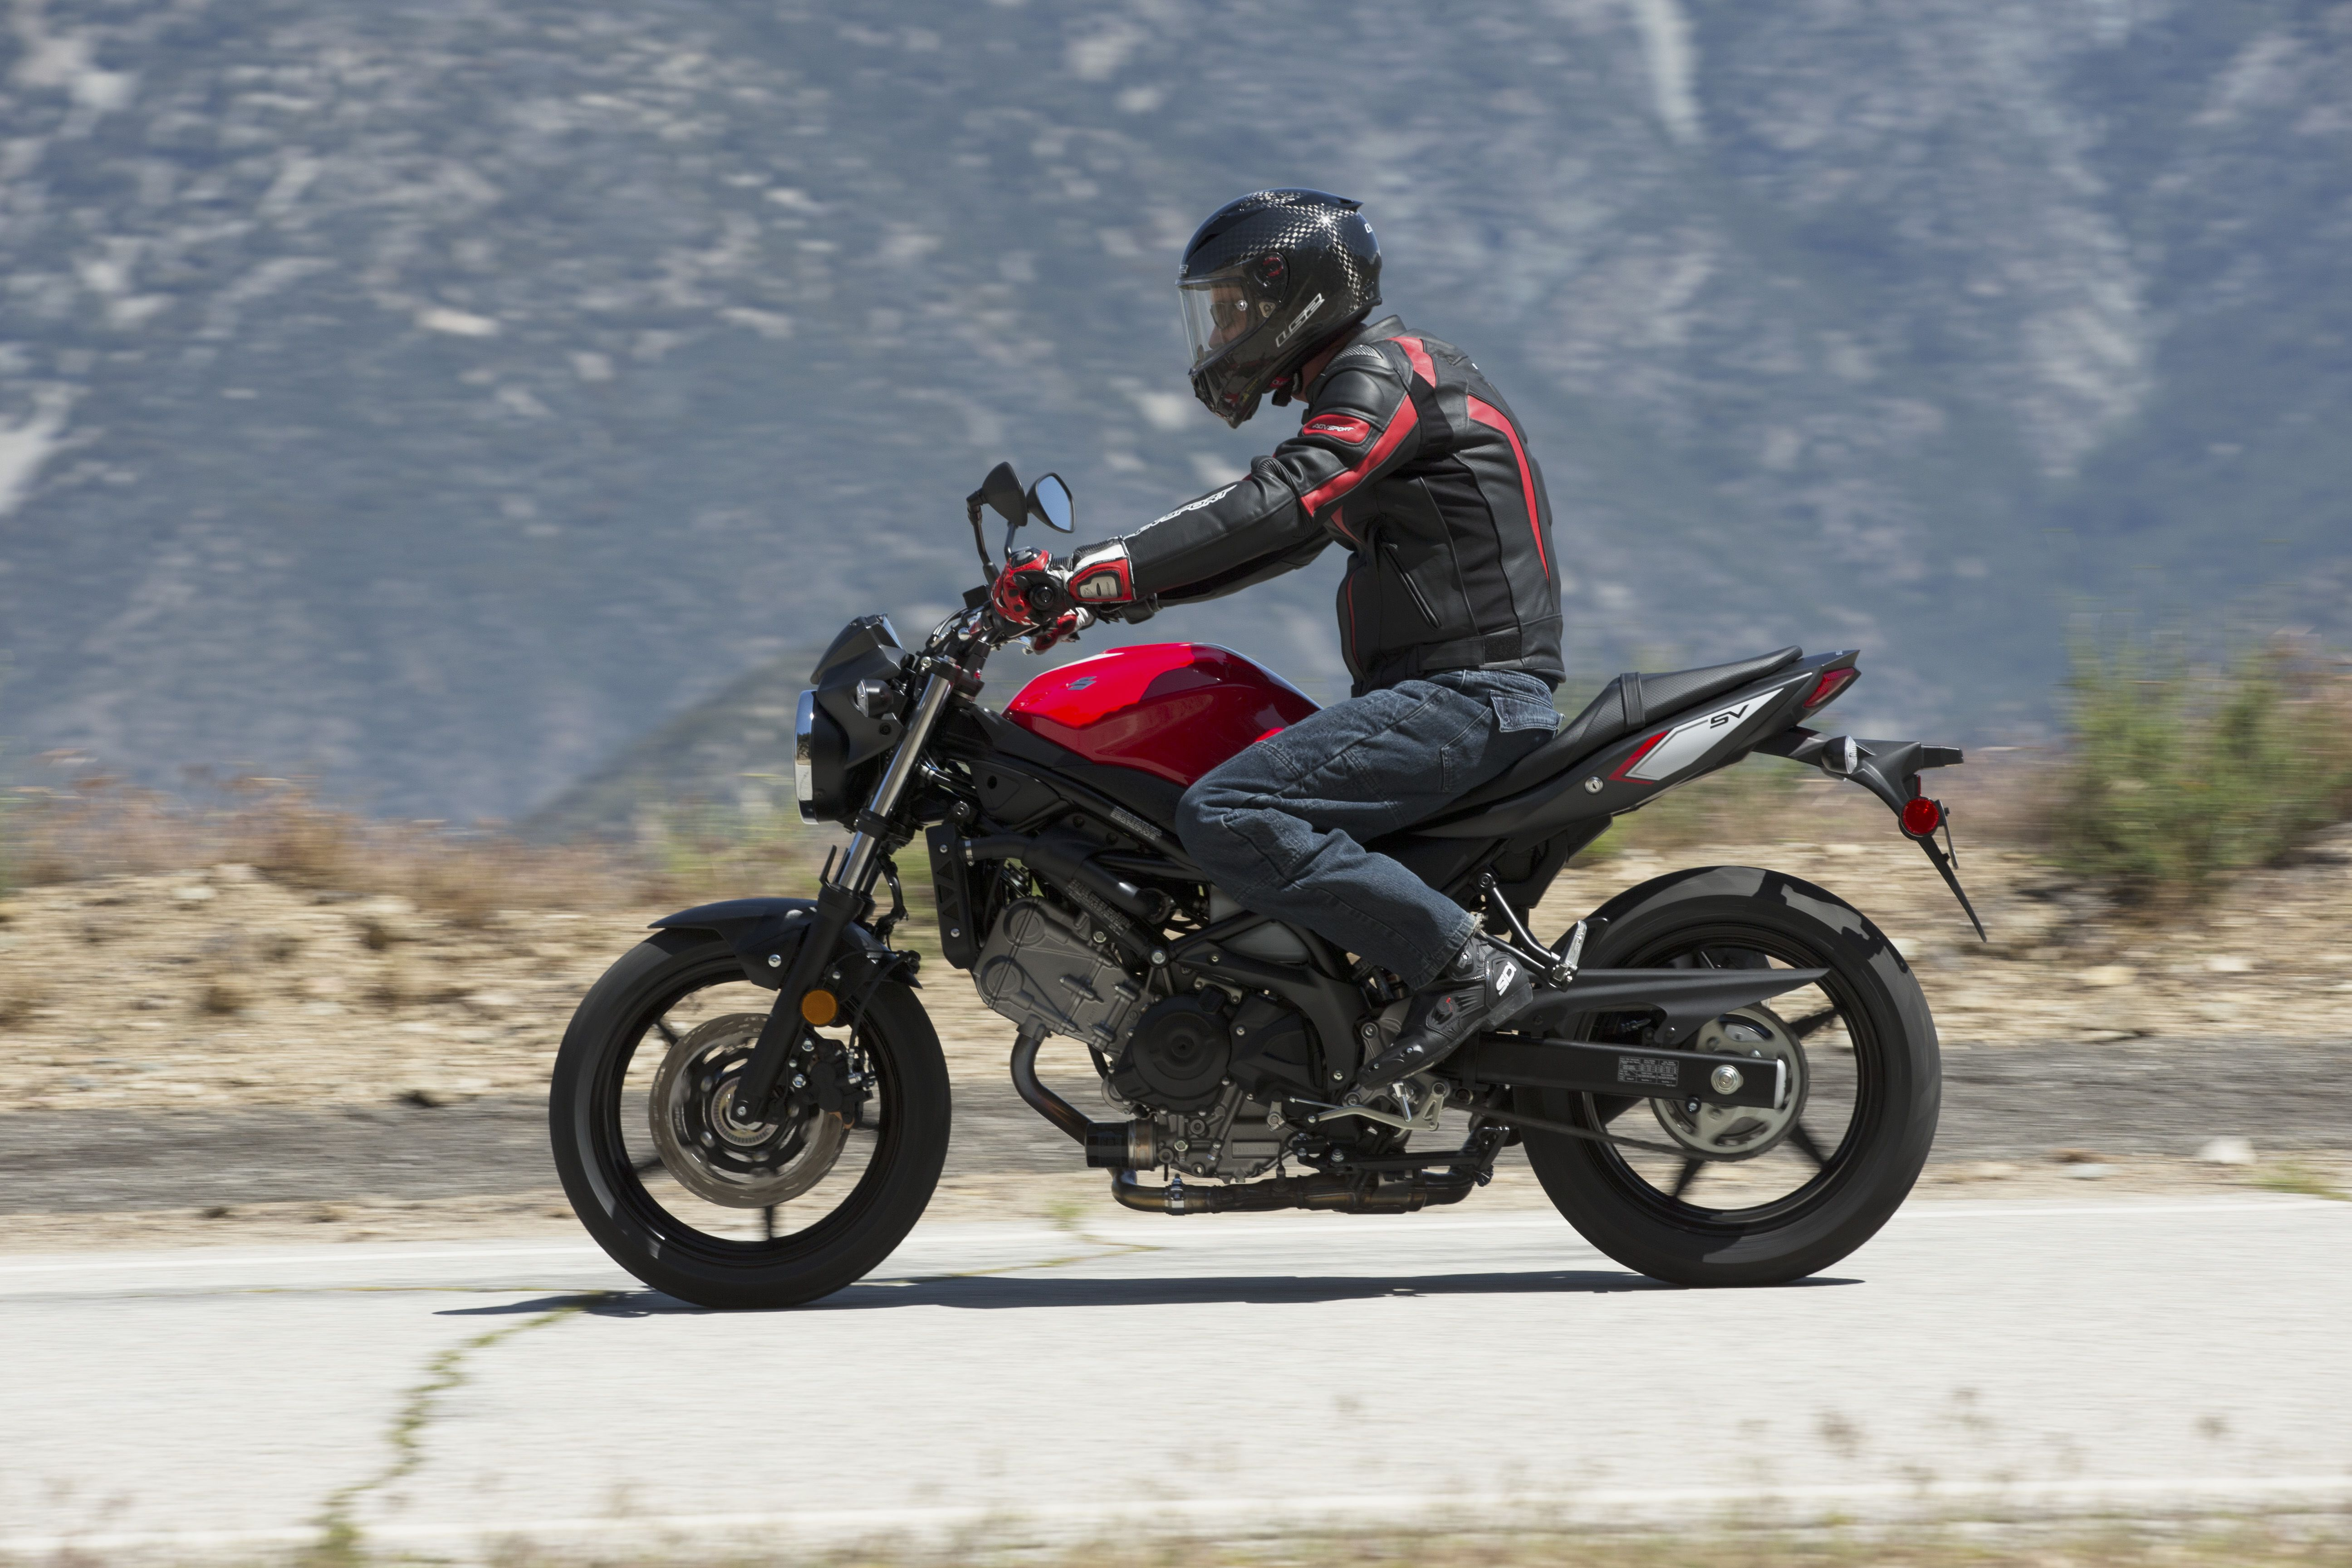 2017 Suzuki SV650 - FIRST RIDE REVIEW | Cycle World